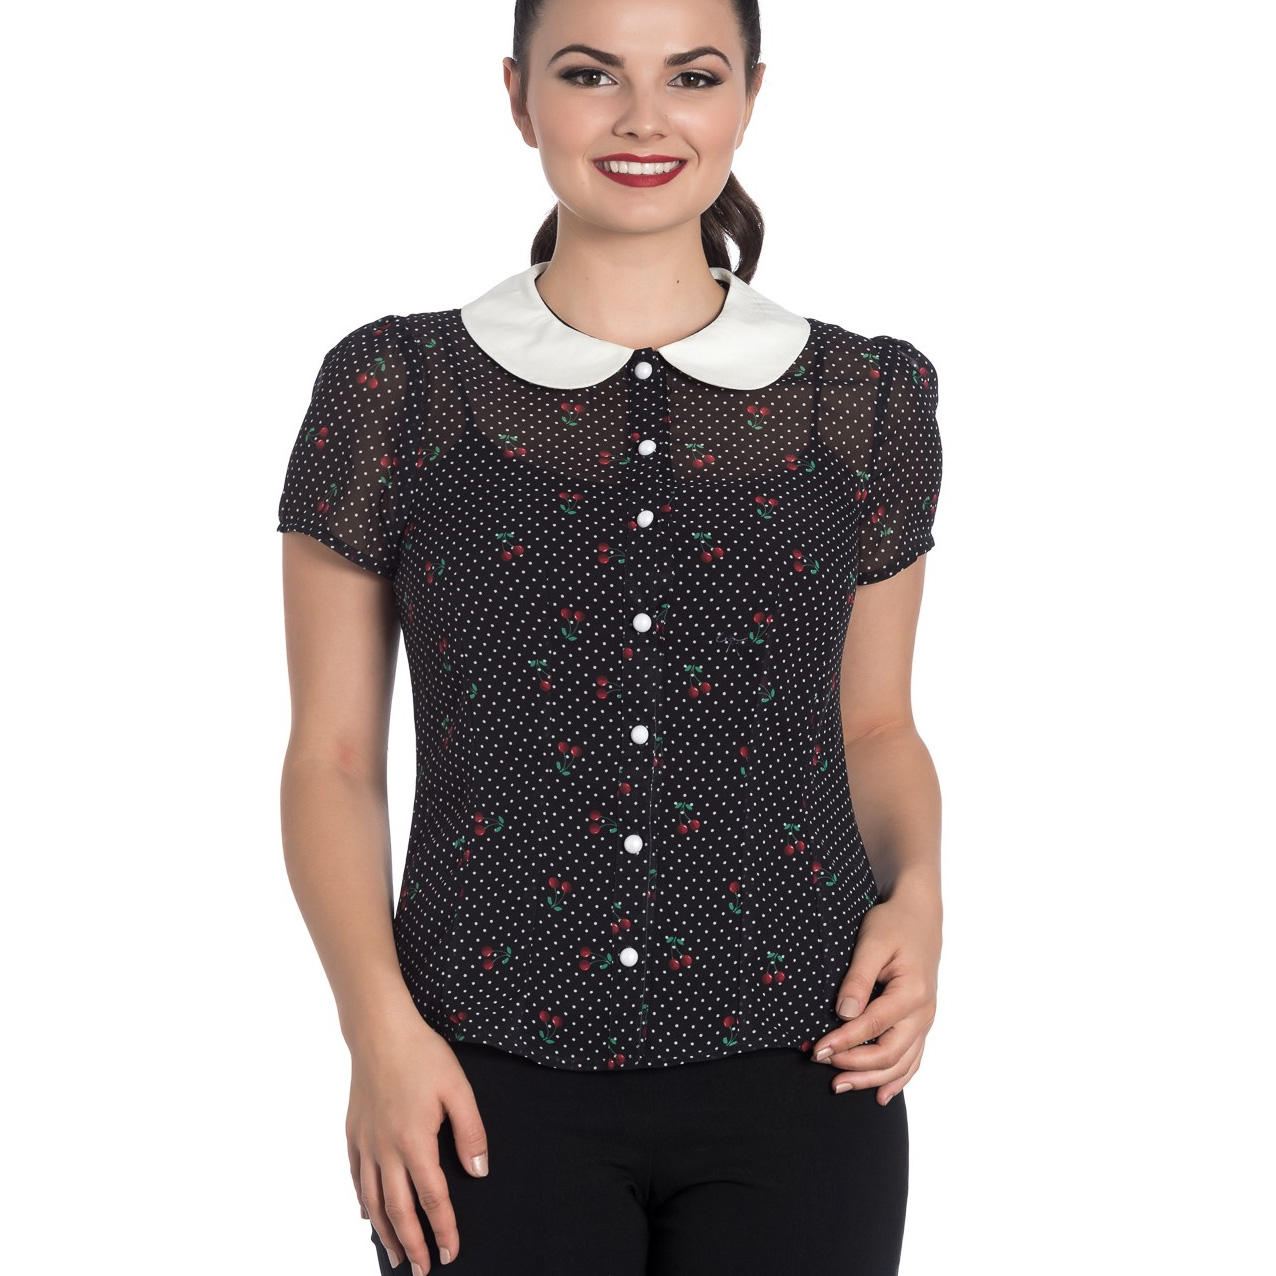 Hell-Bunny-Shirt-Top-Black-50s-Polka-Dot-SOPHIE-Blouse-Cherries-Cherry-All-Sizes thumbnail 11